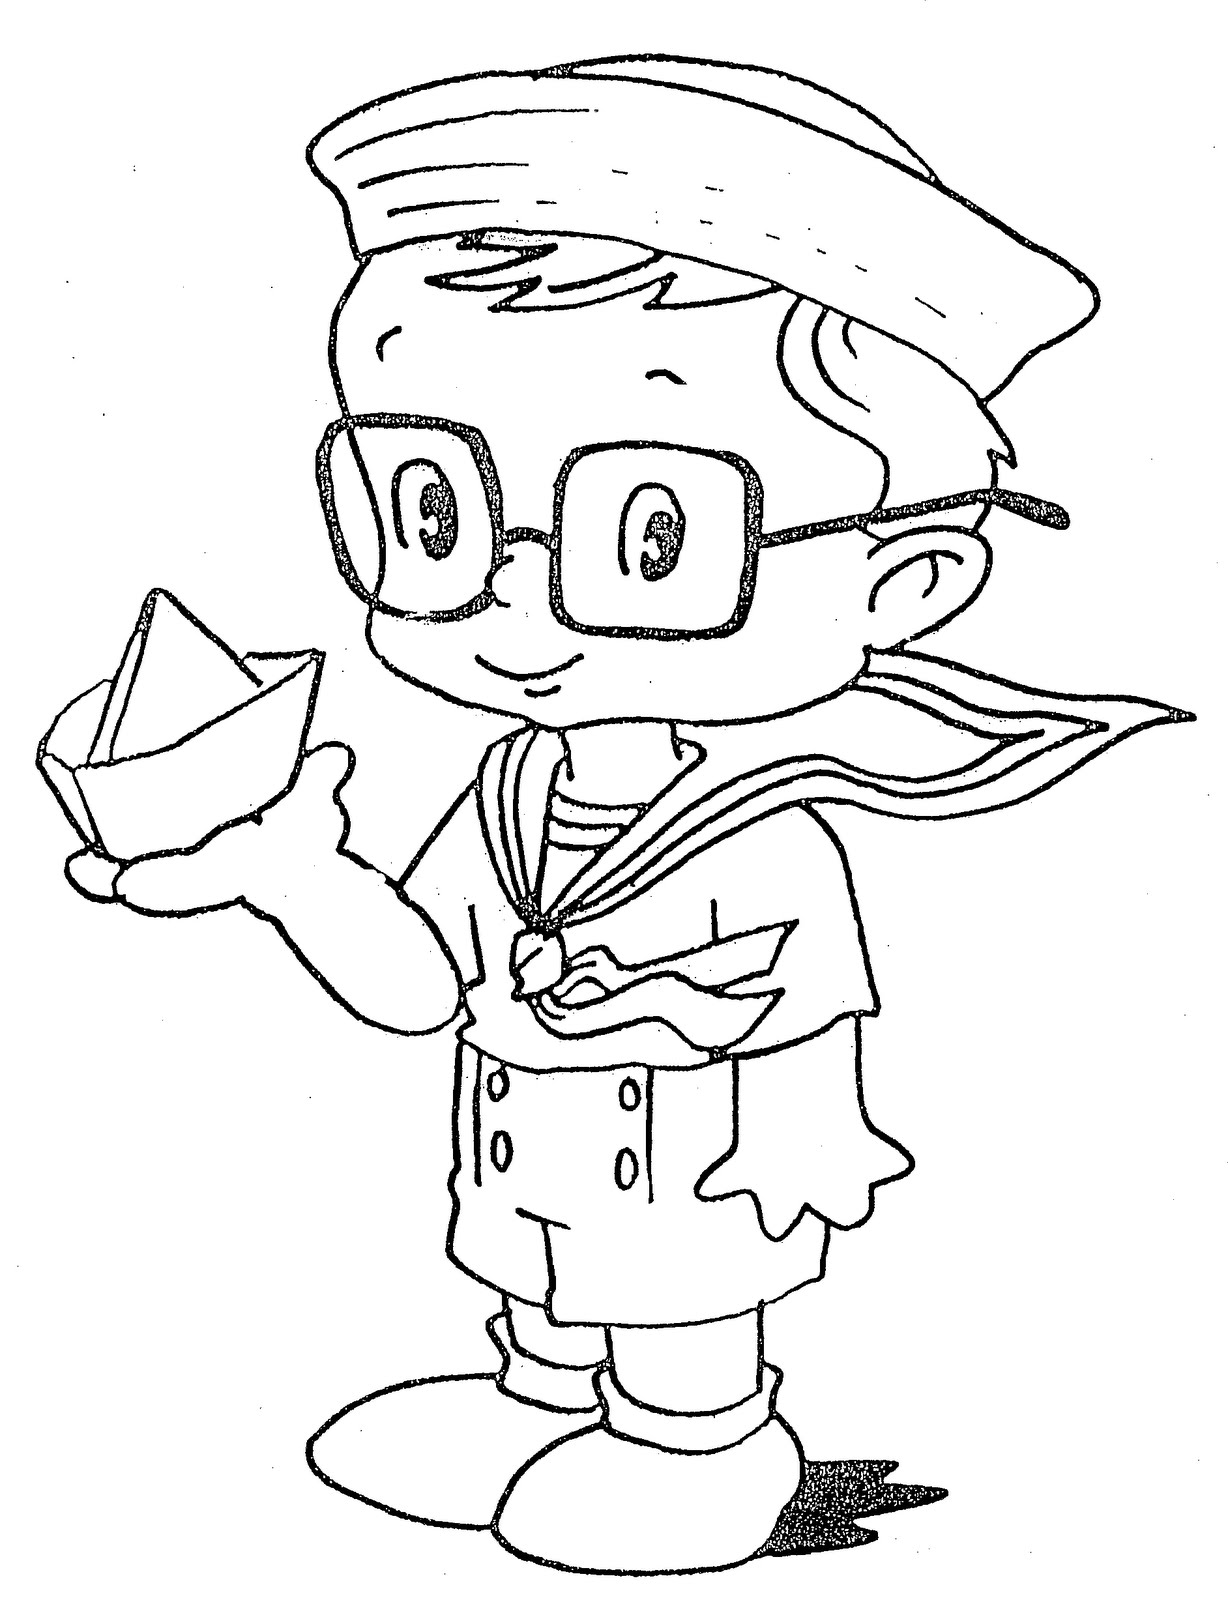 Mexican Boy Coloring Page Sketch Coloring Page